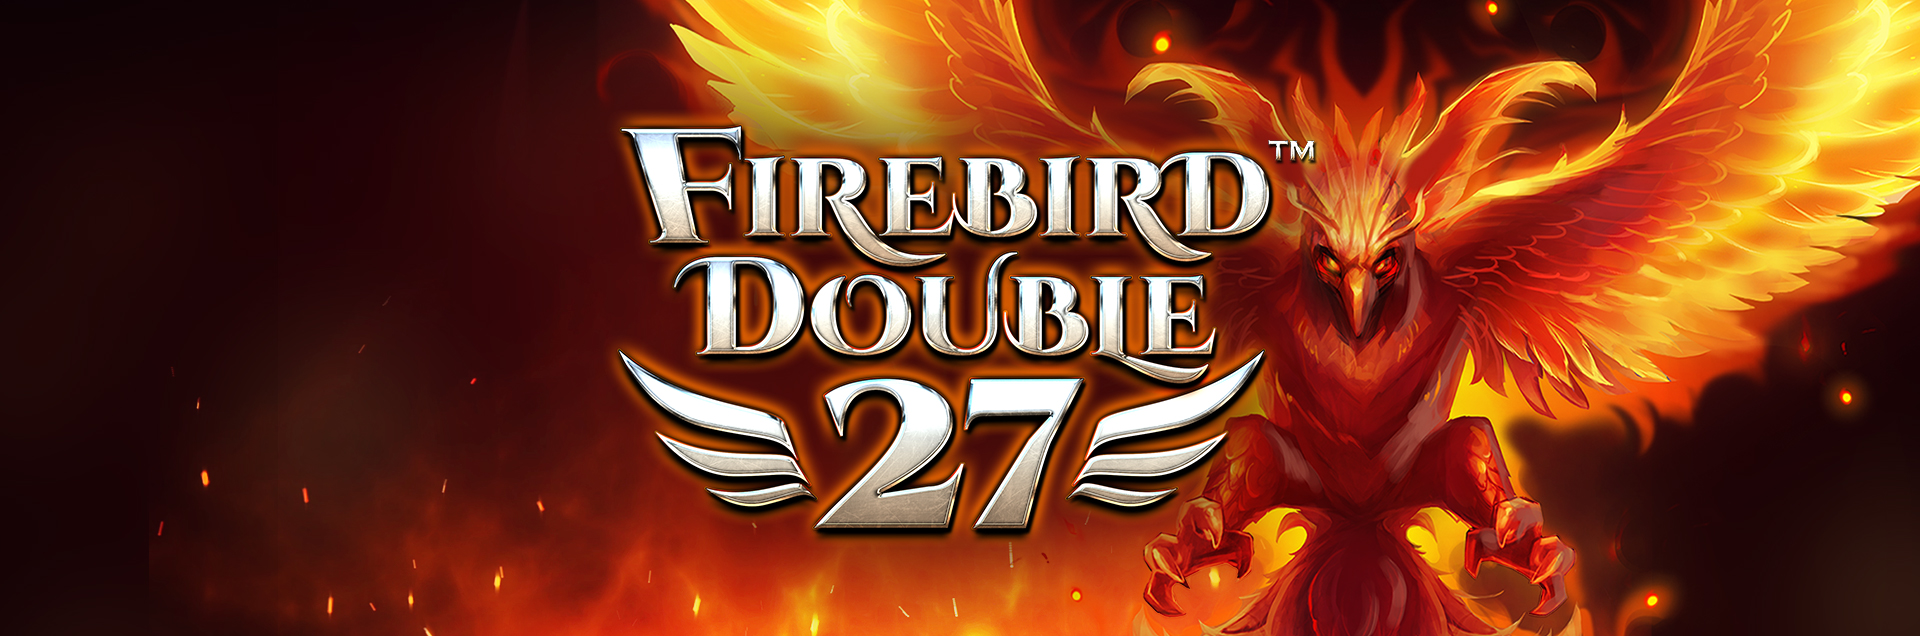 Firebird Double27 header image games